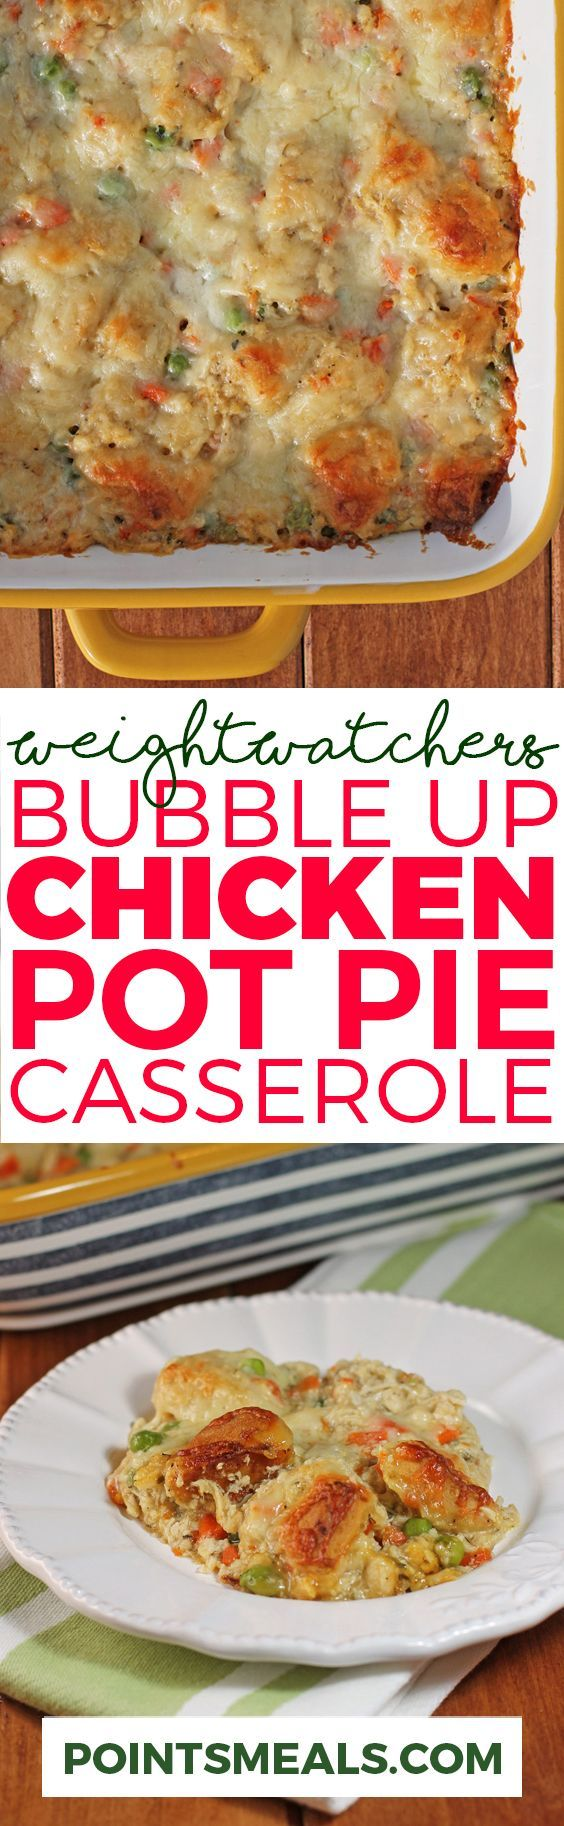 BUBBLE UP CHICKEN POT PIE CASSEROLE (WEIGHT WATCHERS SMARTPOINTS)